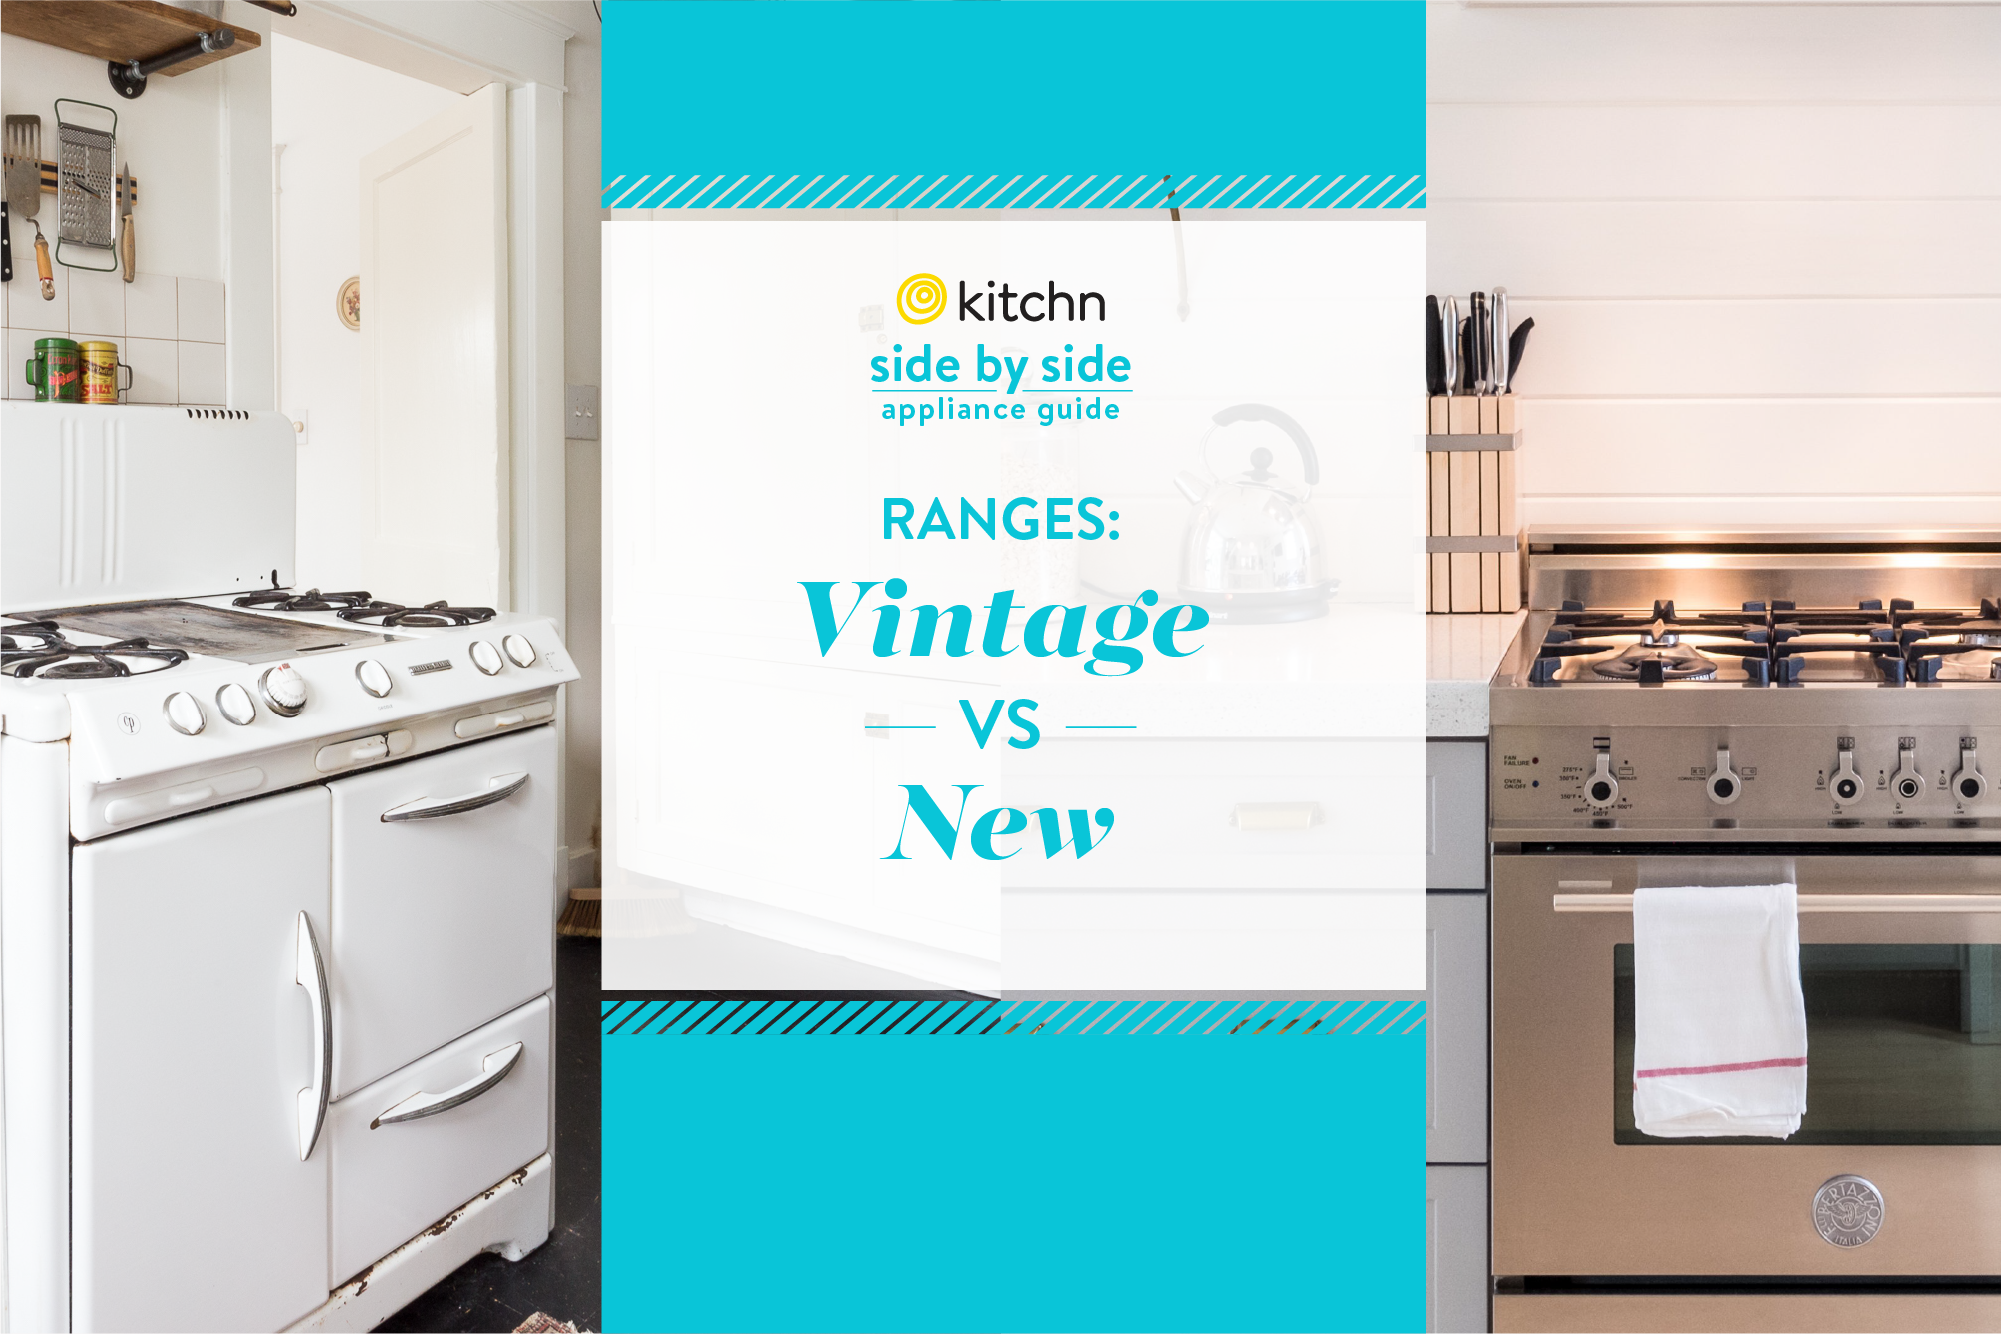 Pleasant The Pros And Cons Of New And Vintage Ranges Kitchn Download Free Architecture Designs Itiscsunscenecom